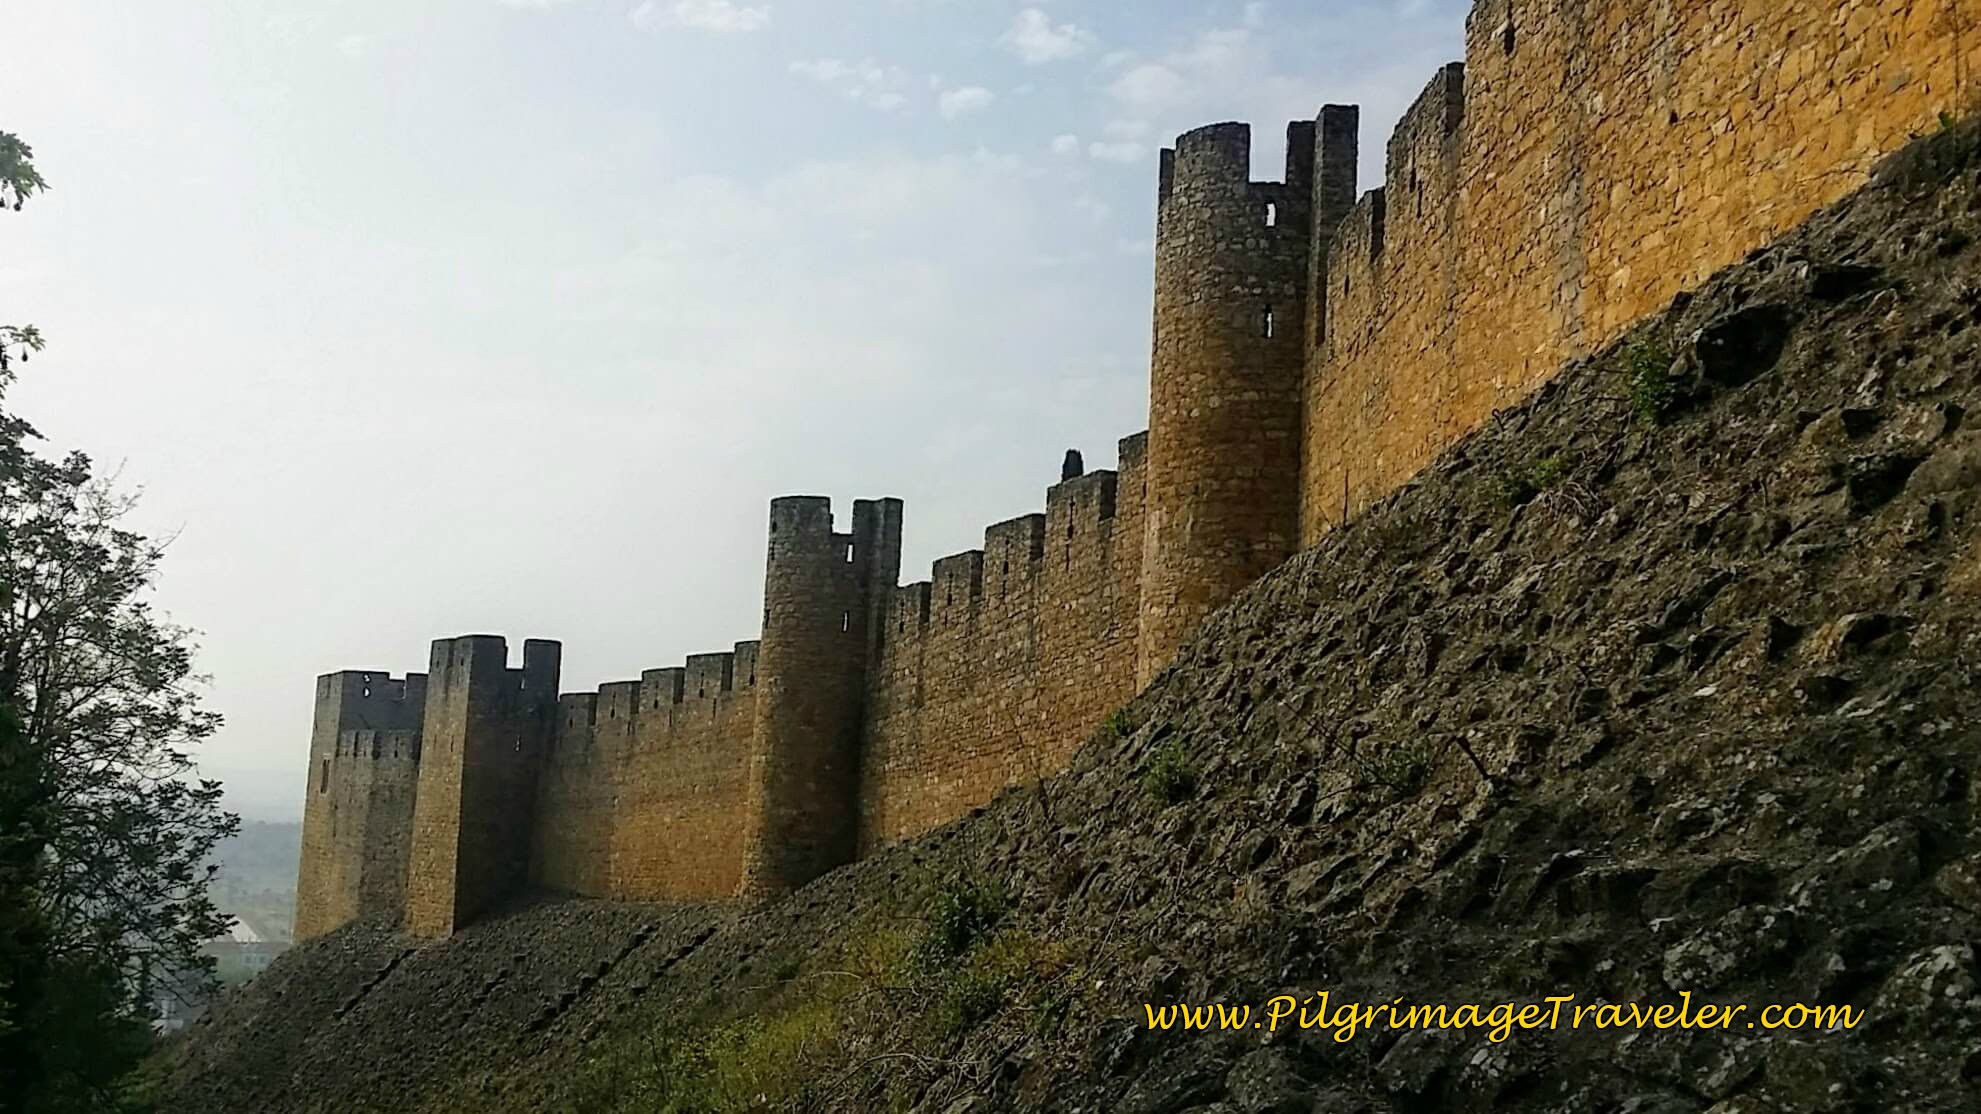 South Fortress Wall, Knight's Templar Castle, Tomar